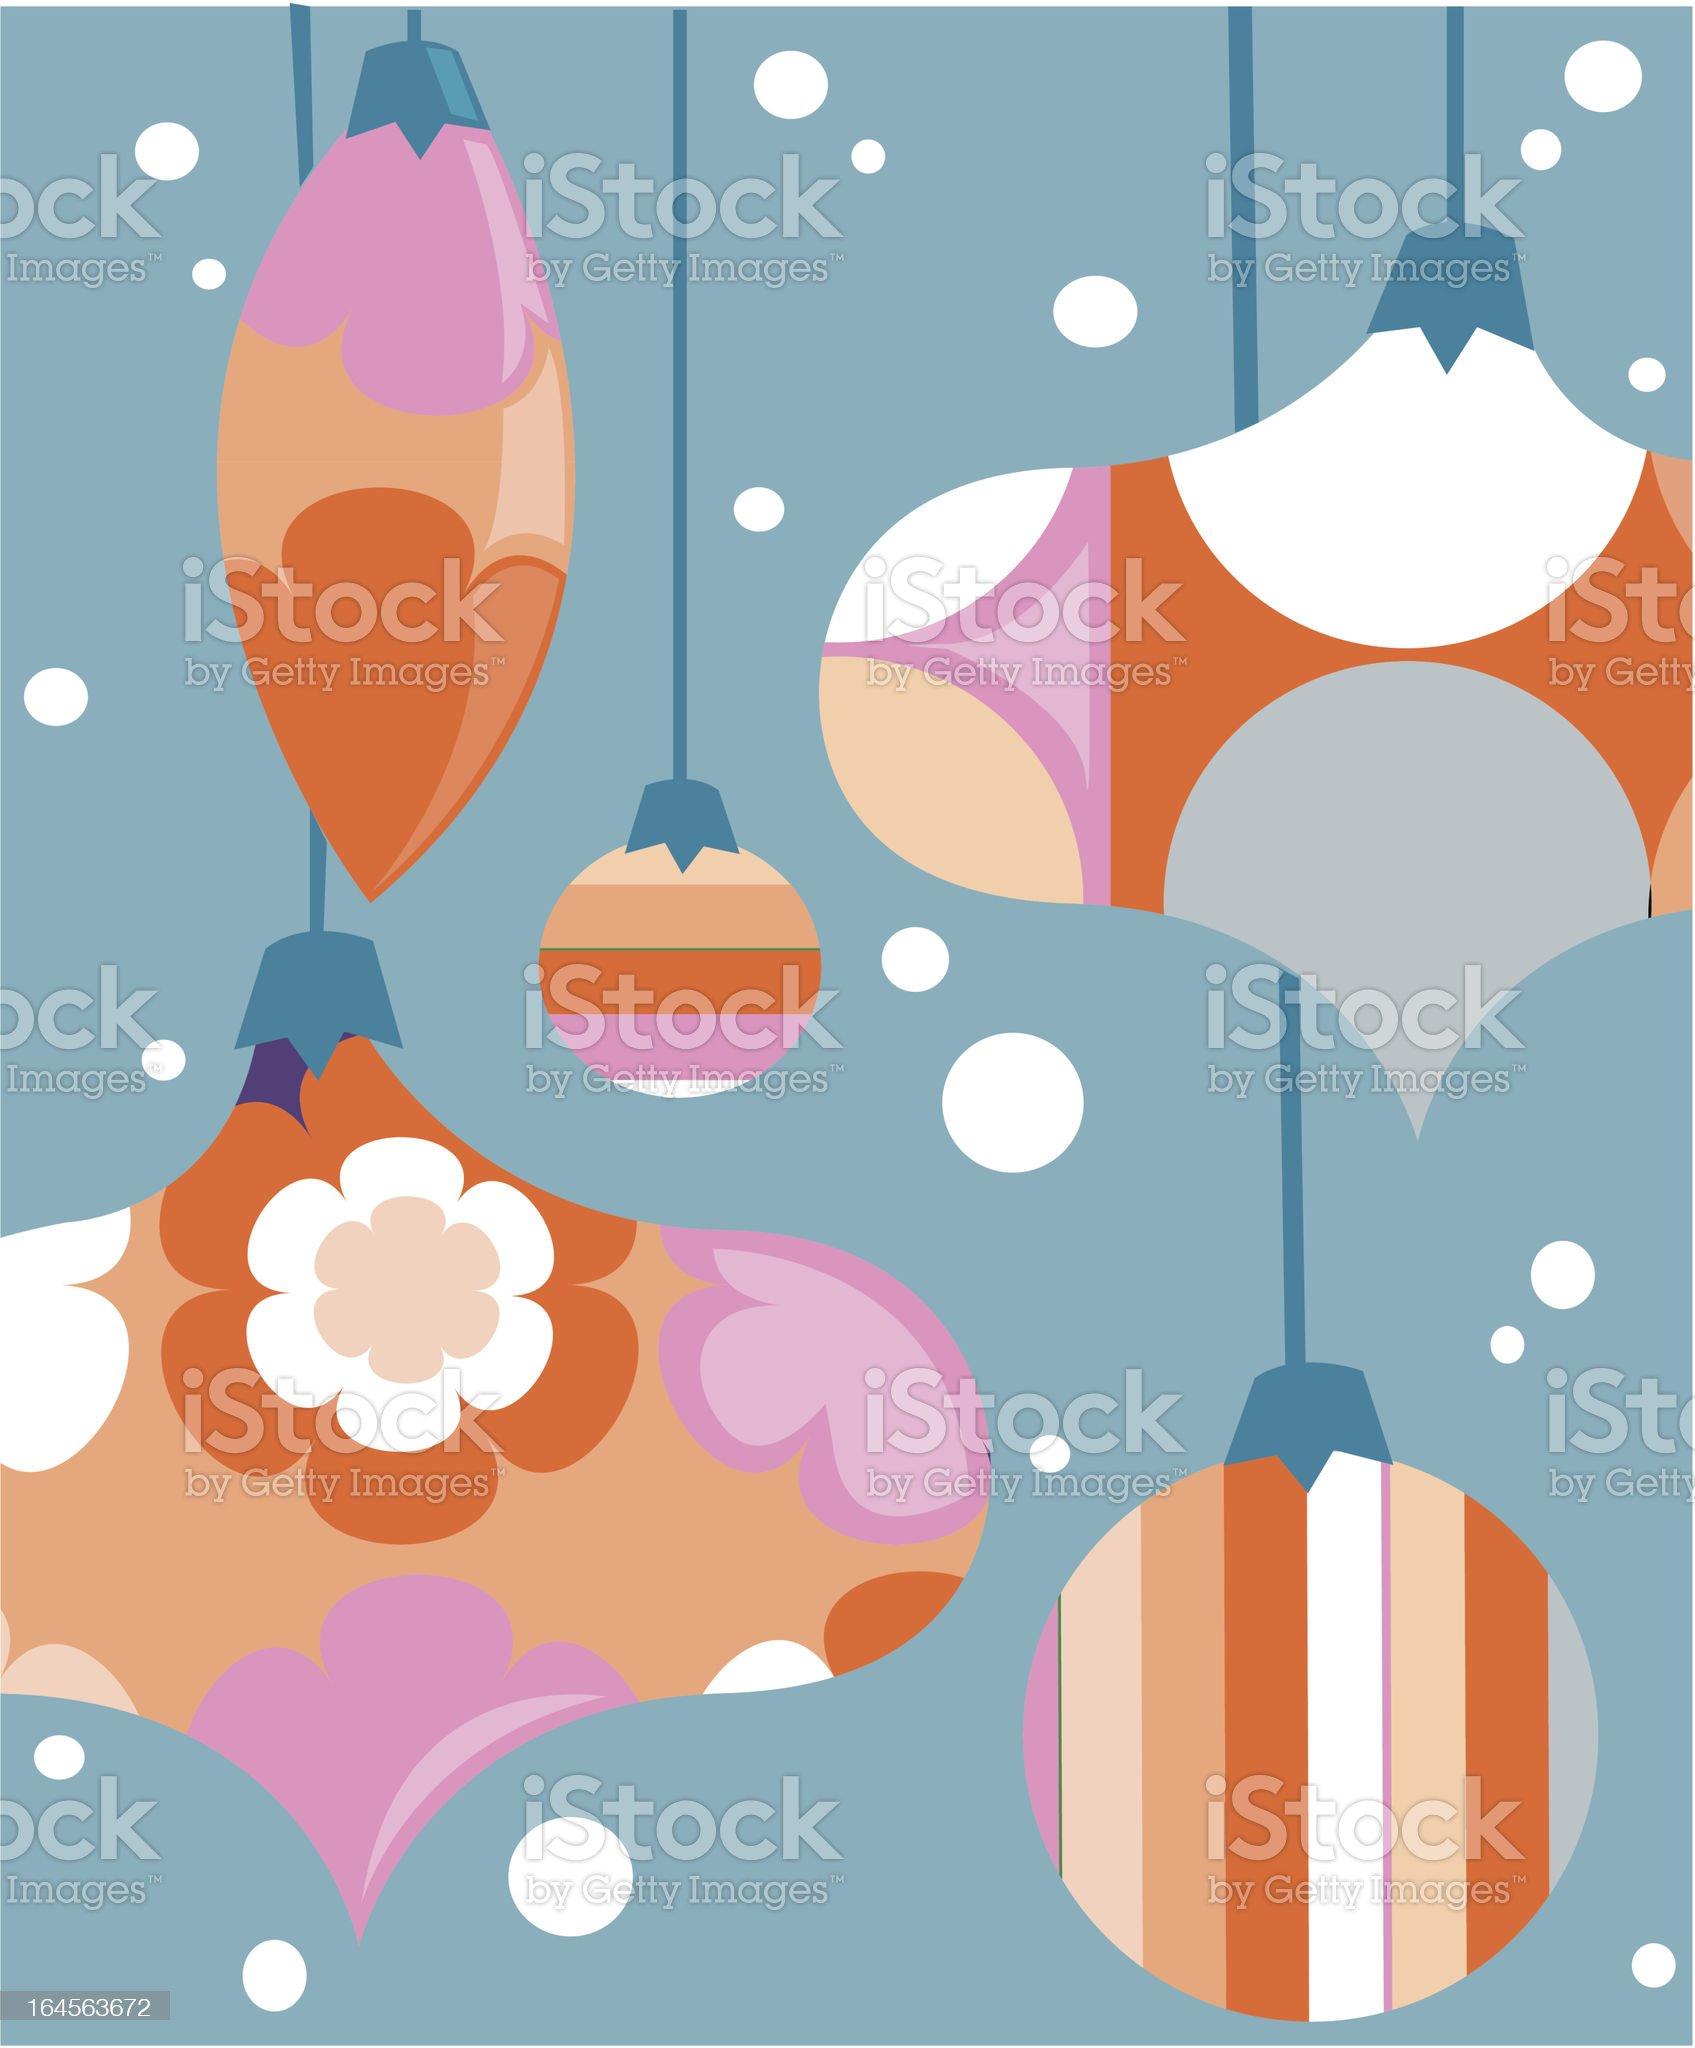 Stylized retro Christmas card design royalty-free stock vector art